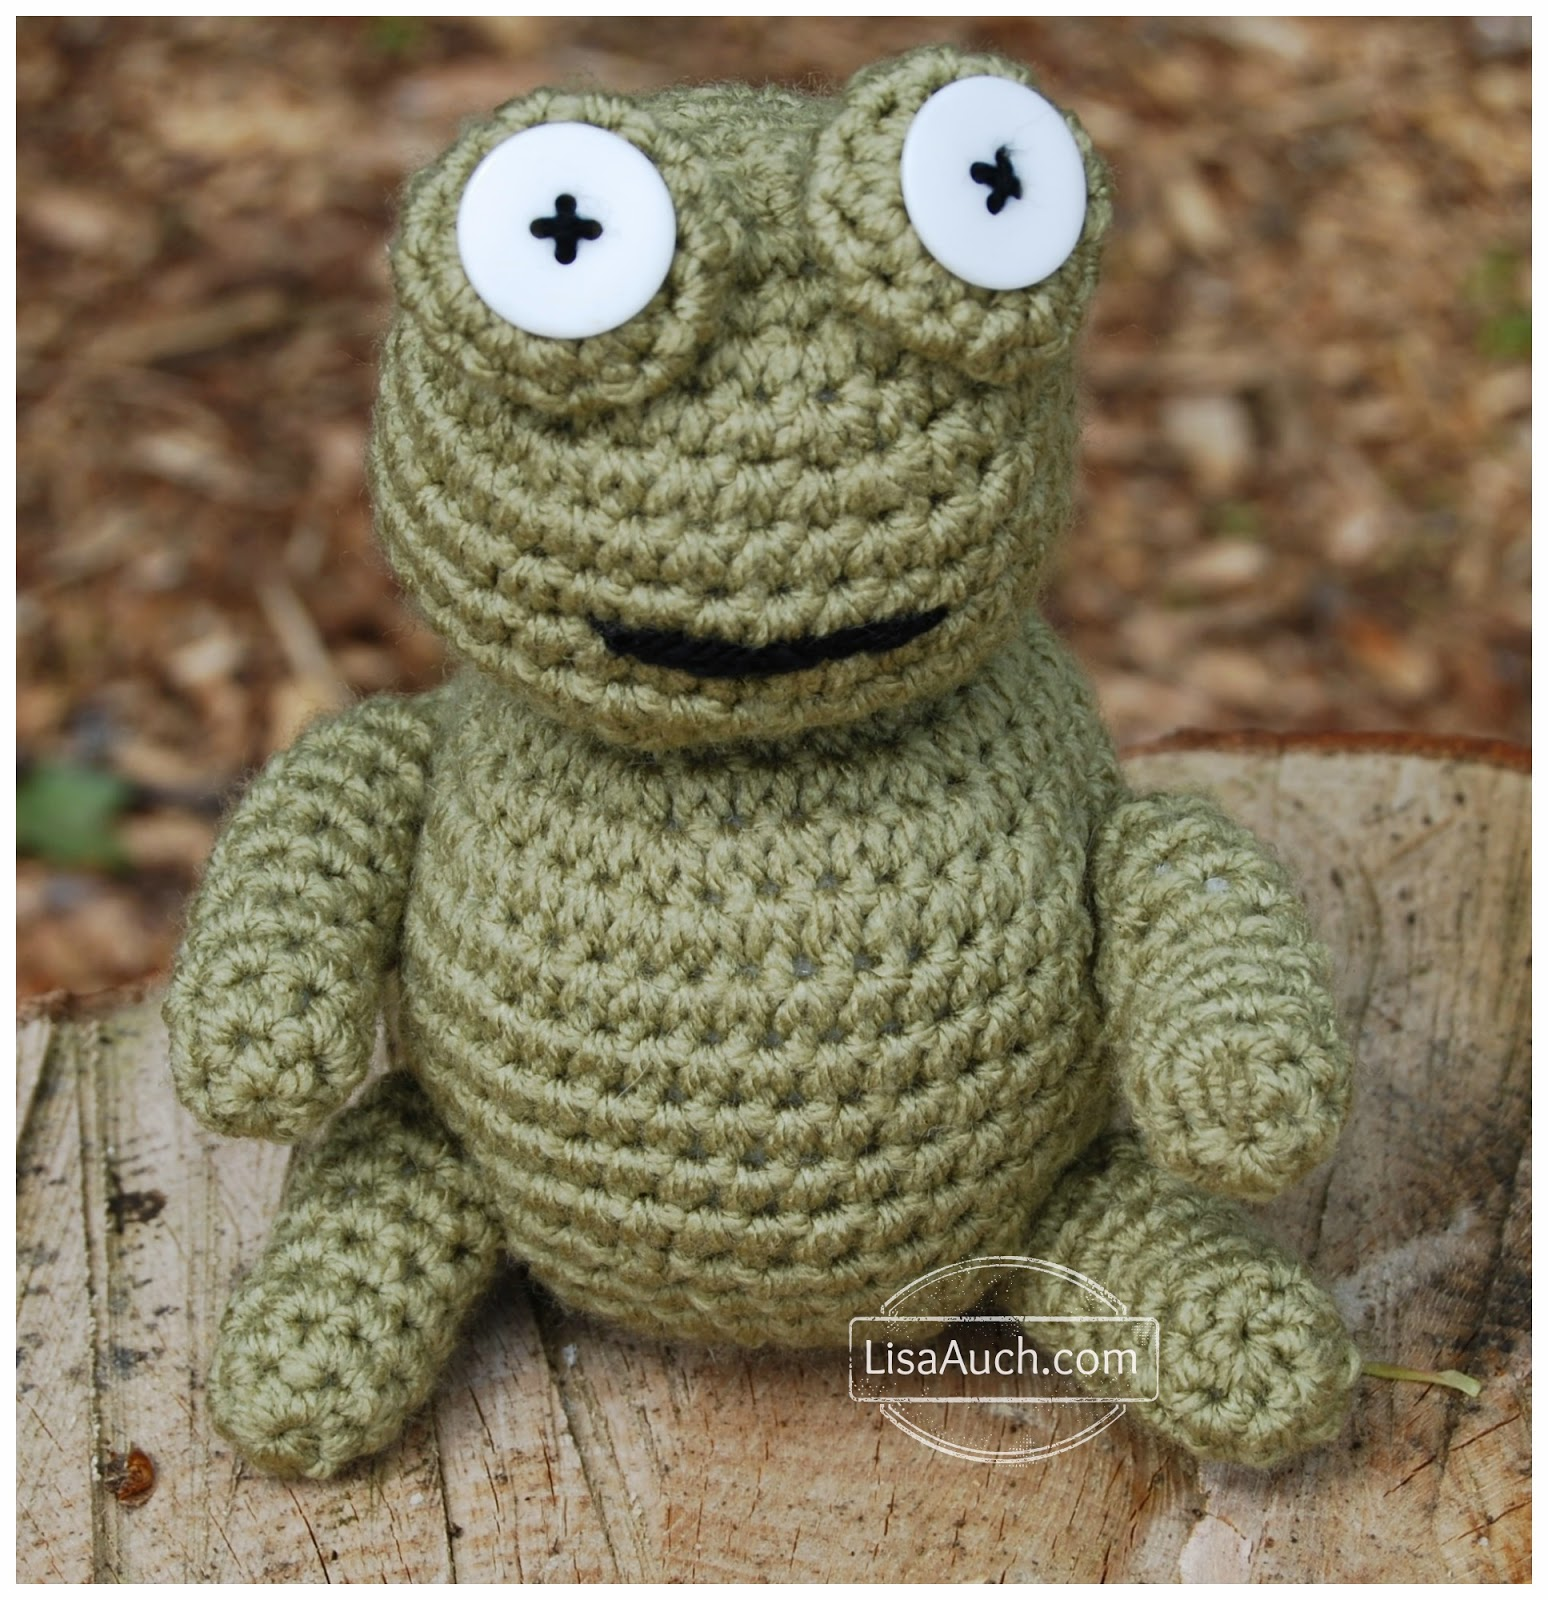 free amigurumi frog crochet pattern free crochet patterns and designs by lisaauch. Black Bedroom Furniture Sets. Home Design Ideas